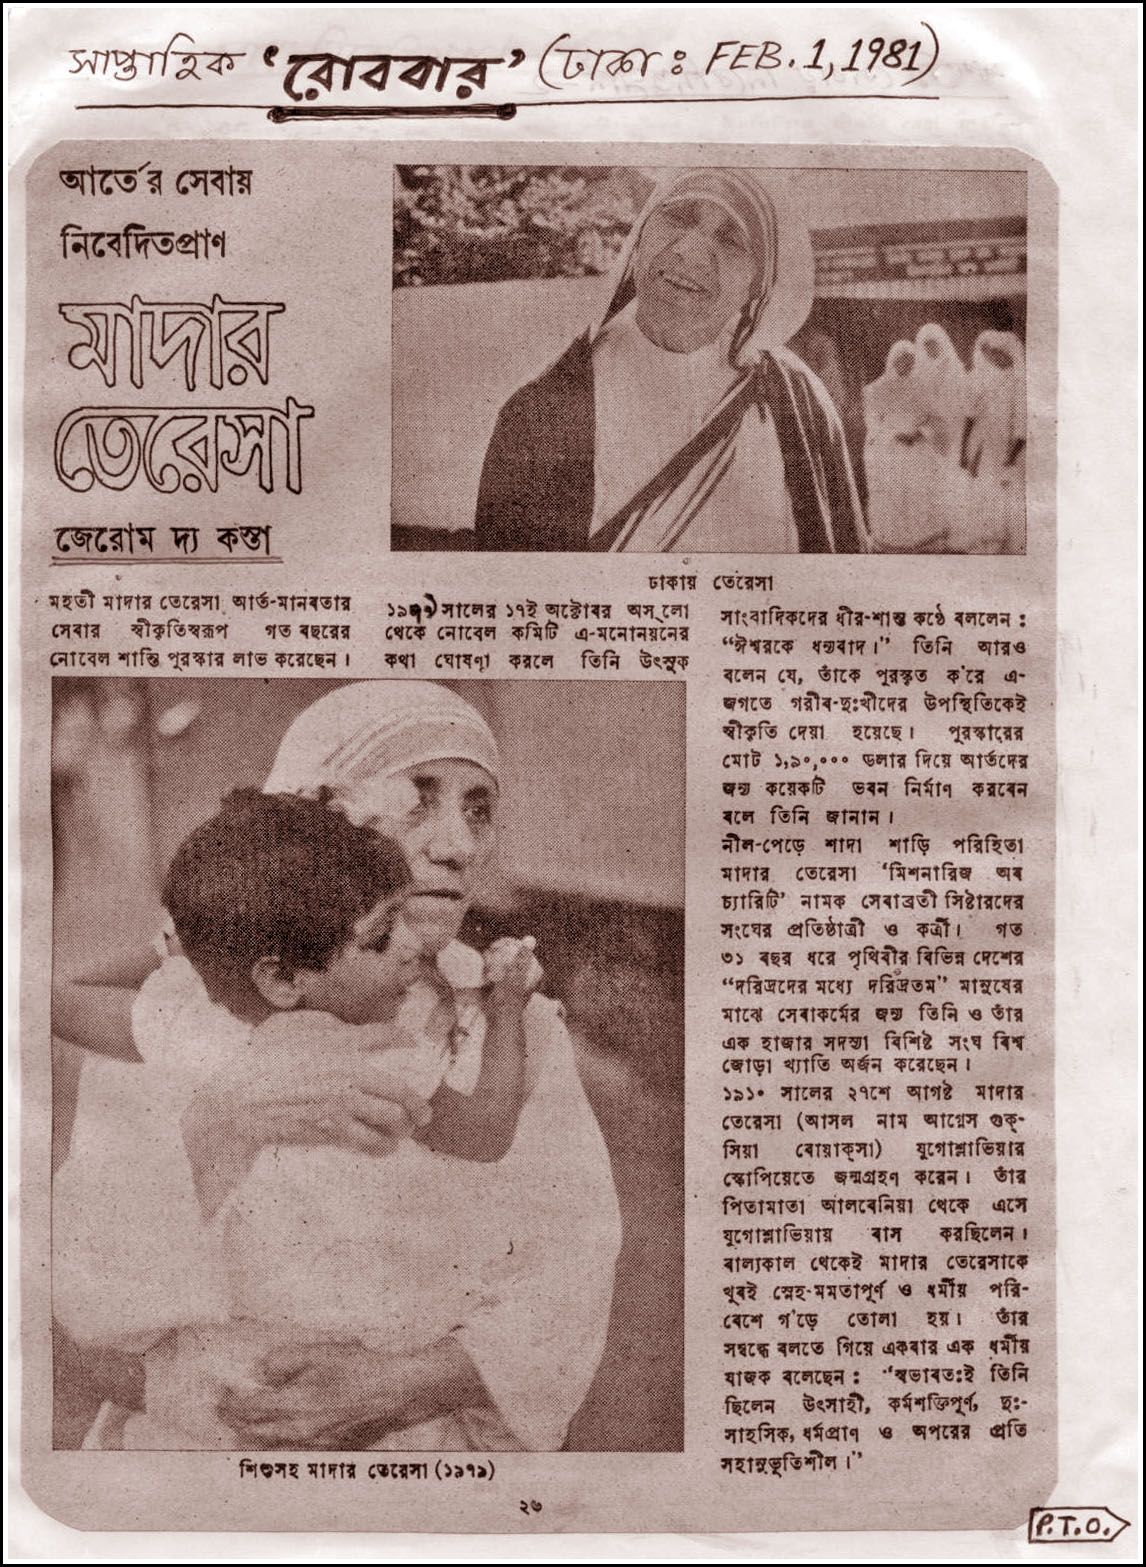 and beyond my humble effort in familiarizing this is the first of the 3 page article on mother teresa published in the robbar weekly dhaka feb 1 1981 as my jerome is a french word